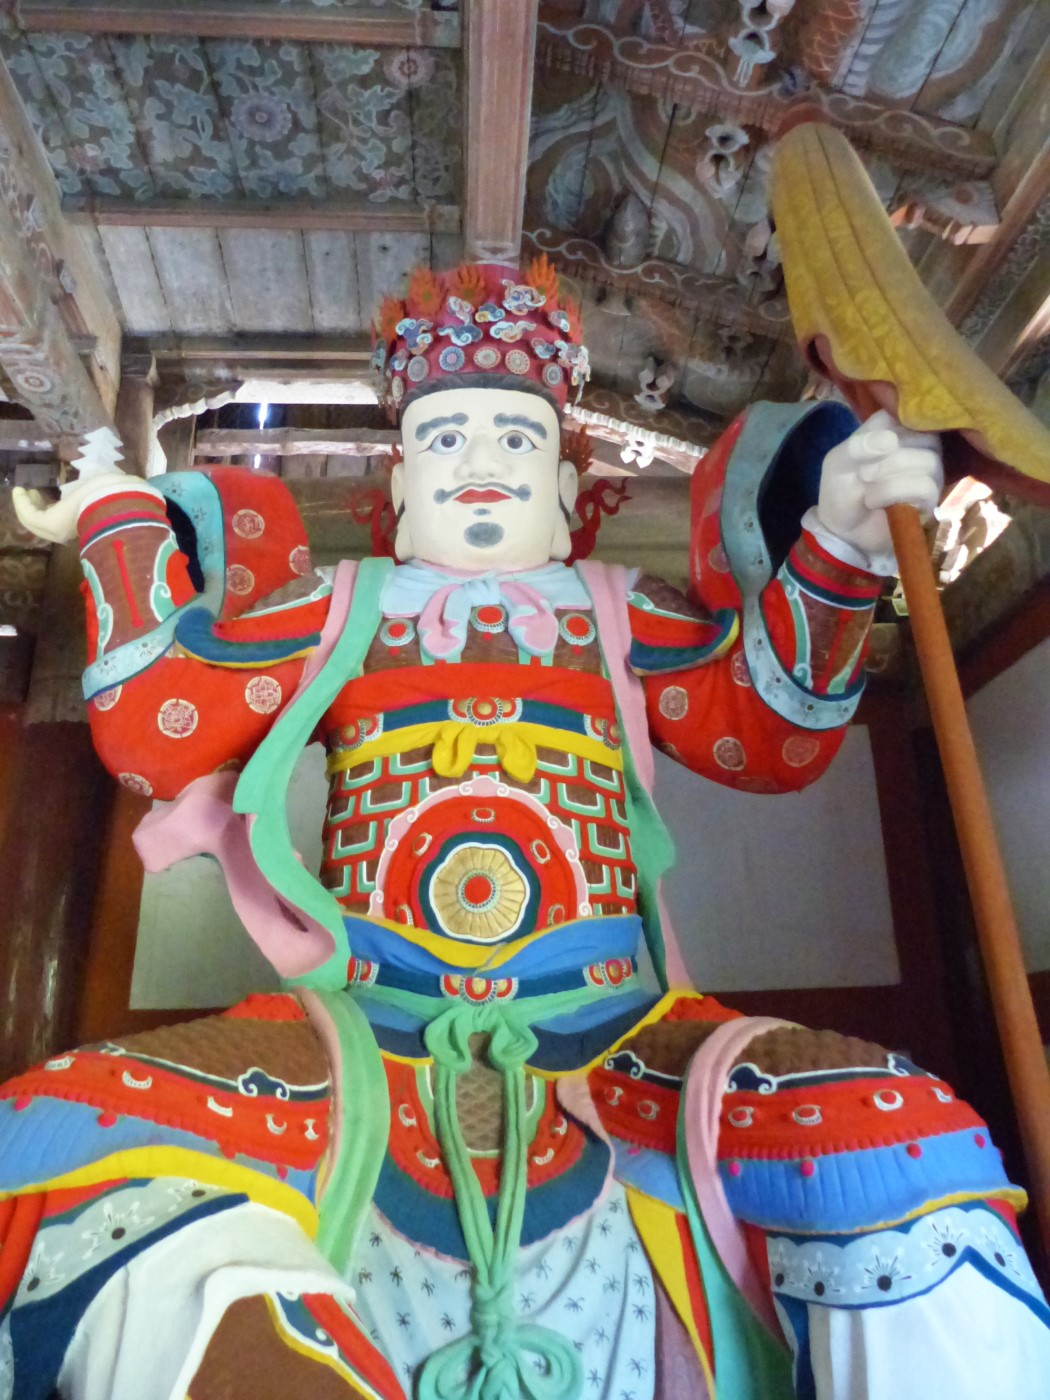 Colourful large statue of a king